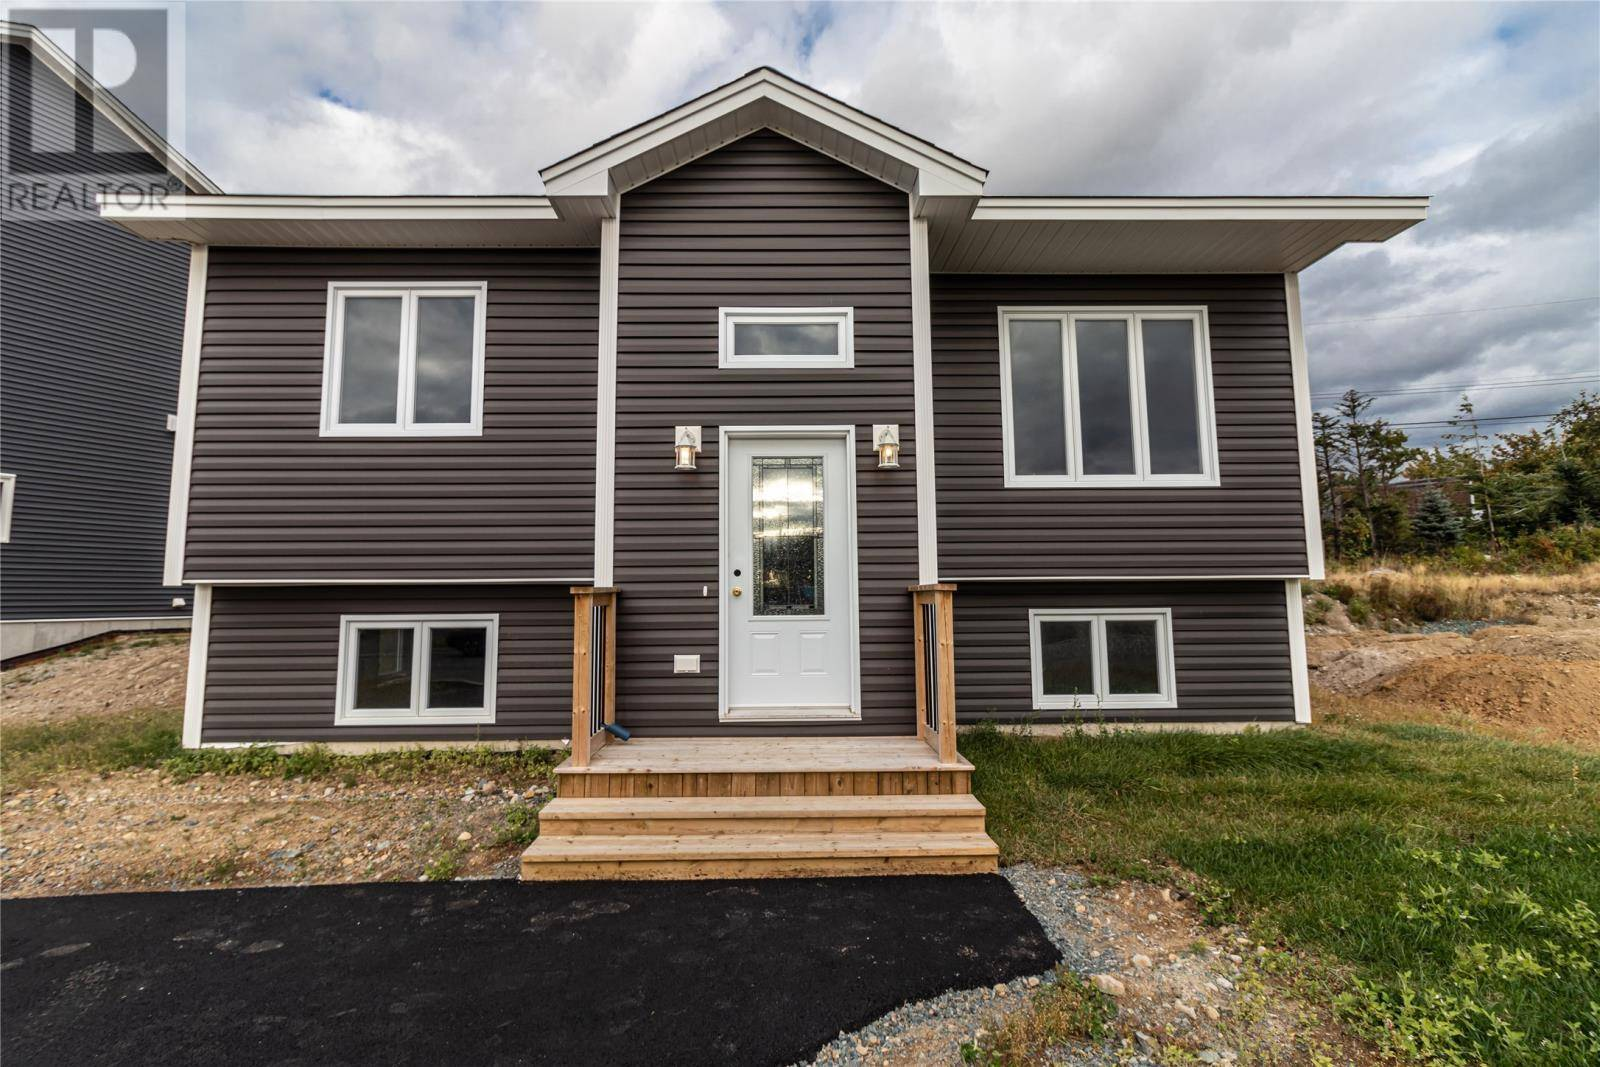 House for sale at 5 Maple Oak Path Conception Bay South Newfoundland - MLS: 1186858